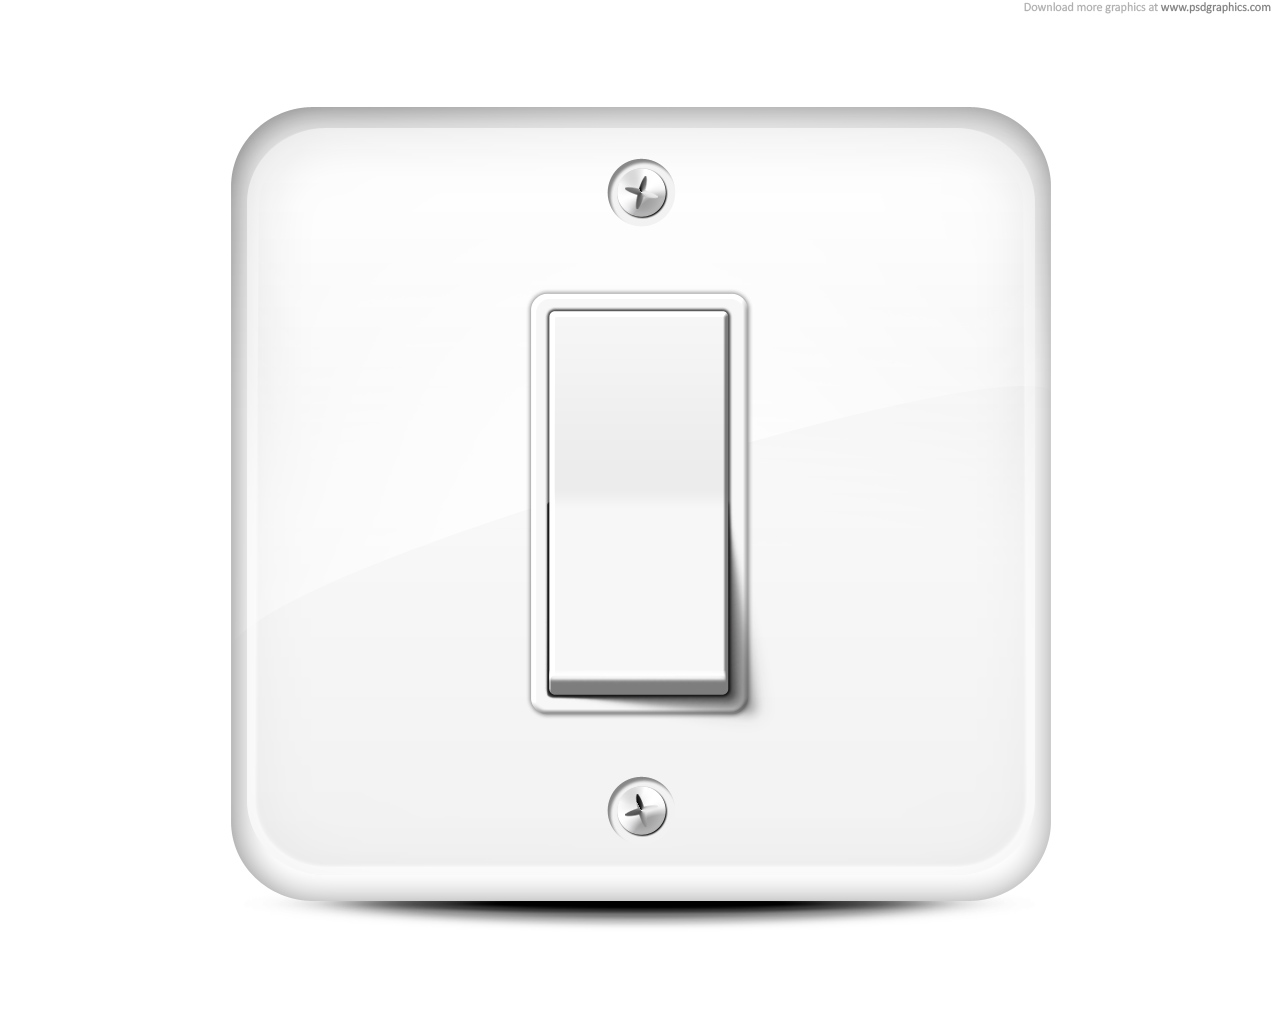 Switch Light Light Switch Icon Psdgraphics